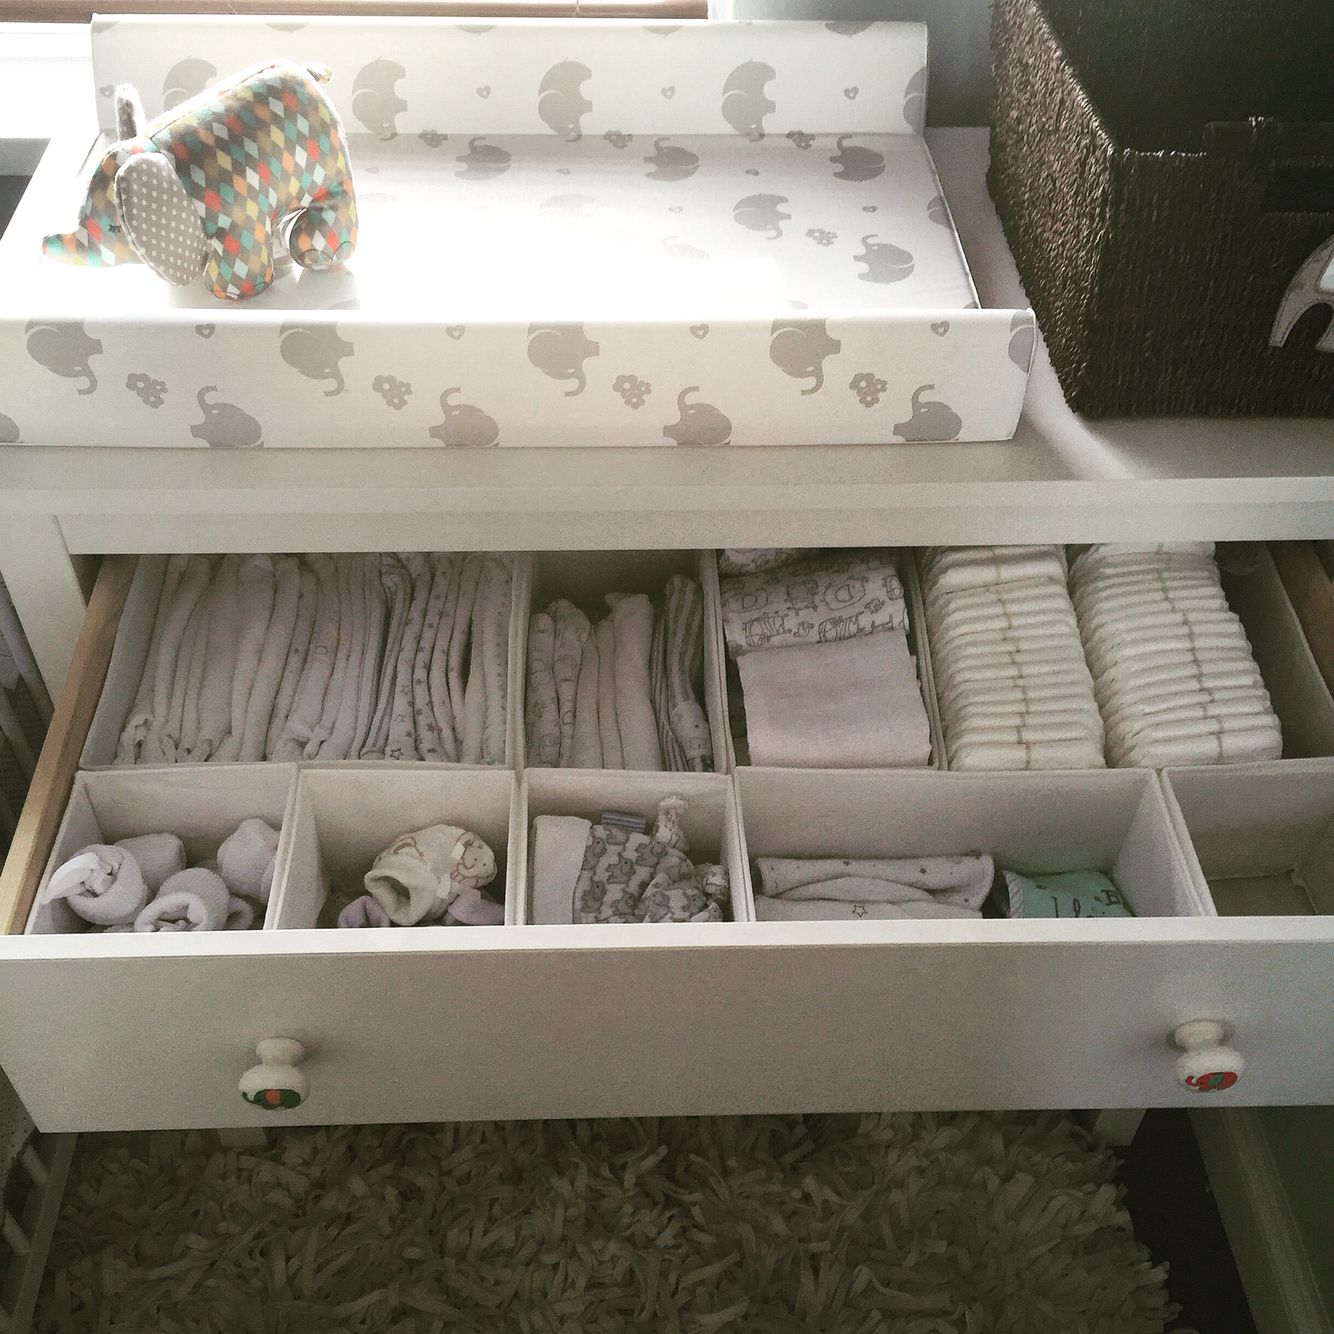 Organisation station ikea skubb boxes perfect for for Baby organizer ideas